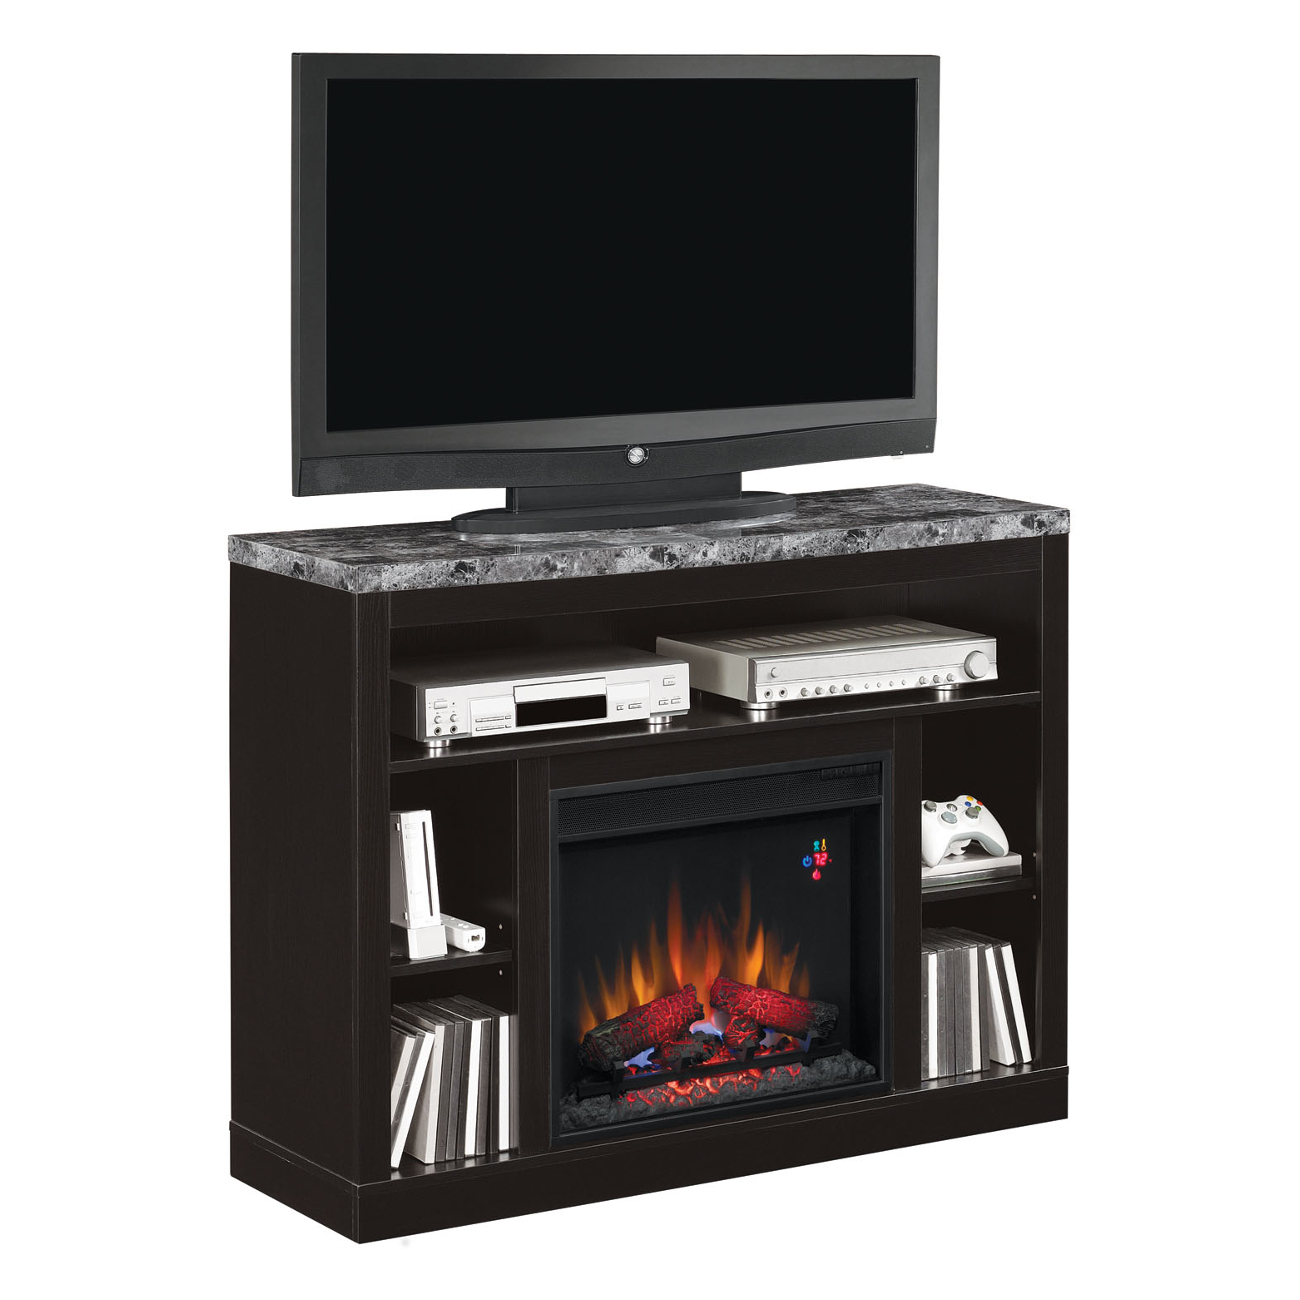 Classic Flame Adams 23mm1824 X445 Infrared Electric Fireplace Media Console Electric Fireplaces